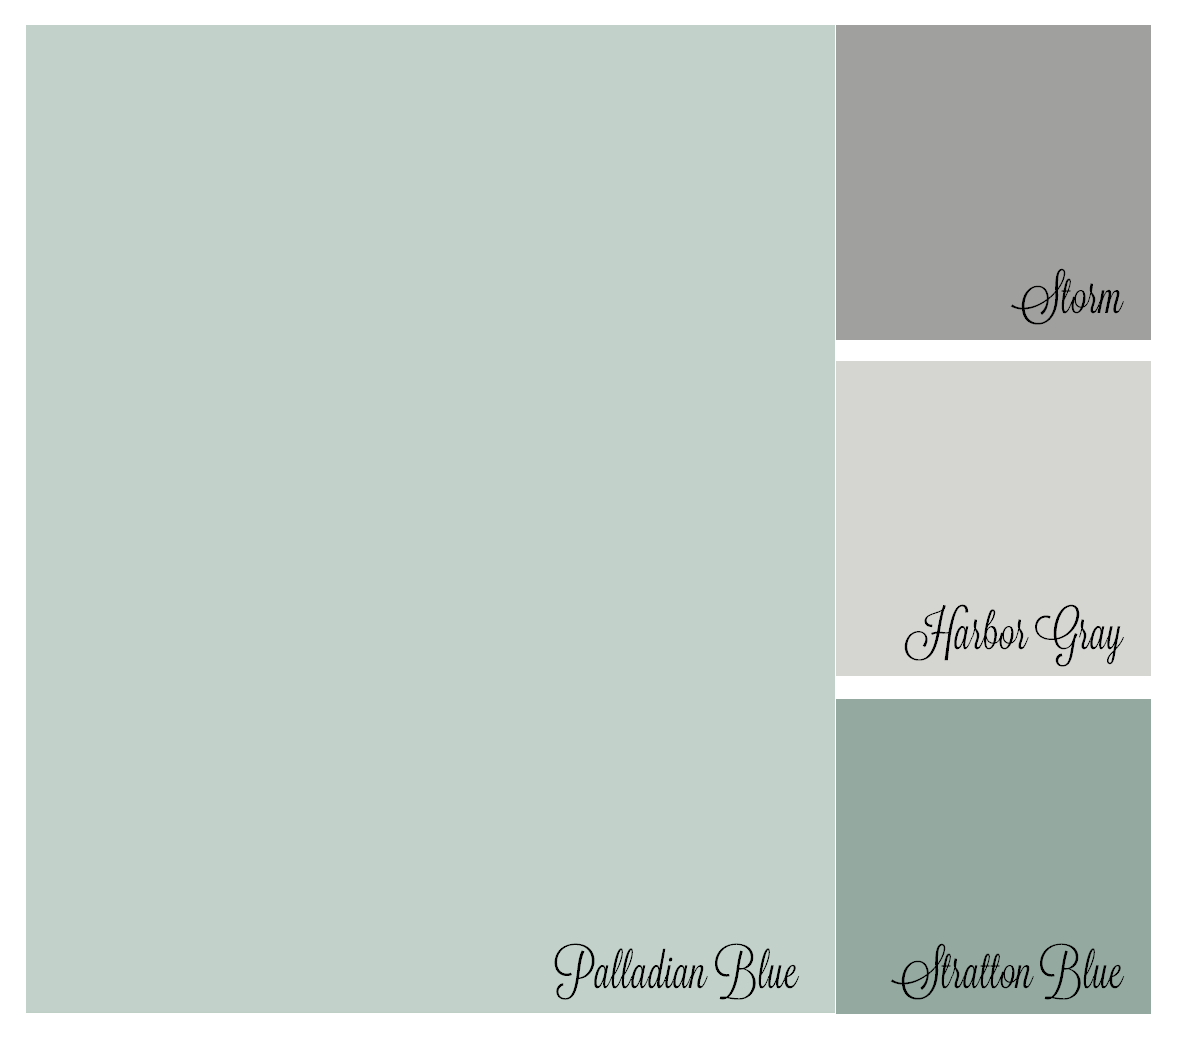 Benjamin moore palladian blue bathroom - Color Palette Benjamin Moore Palladian Blue Storm Harboy Gray Stratton Blue